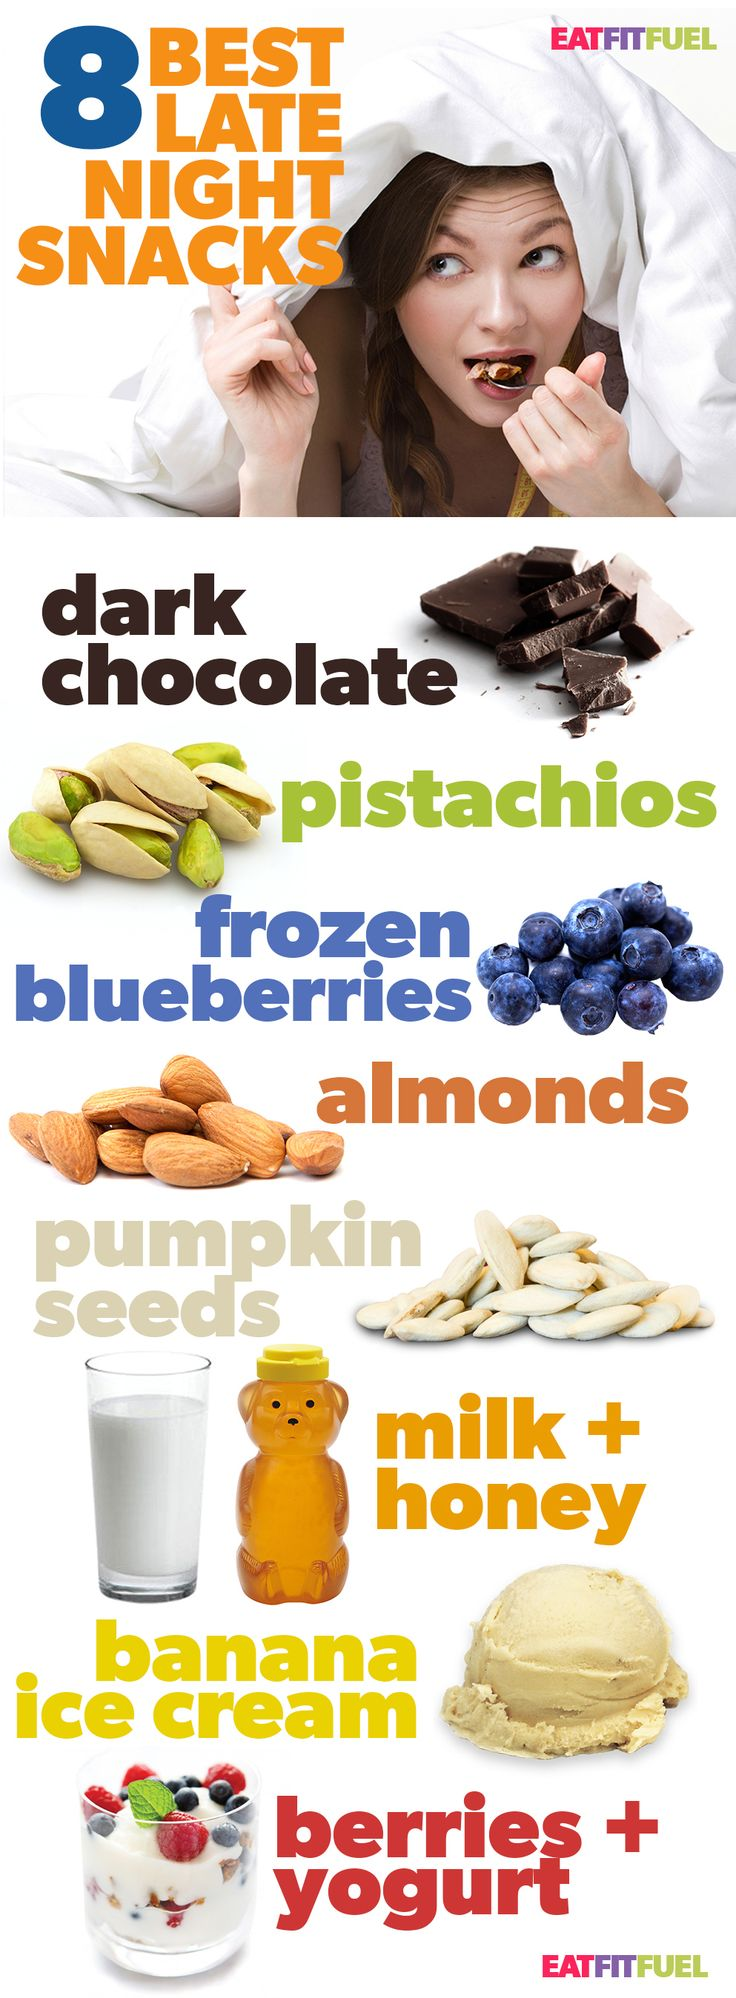 The 8 Best Late Night Snacks for Weight Loss Infographic! | Posted By: NewHowToLoseBellyFat.com